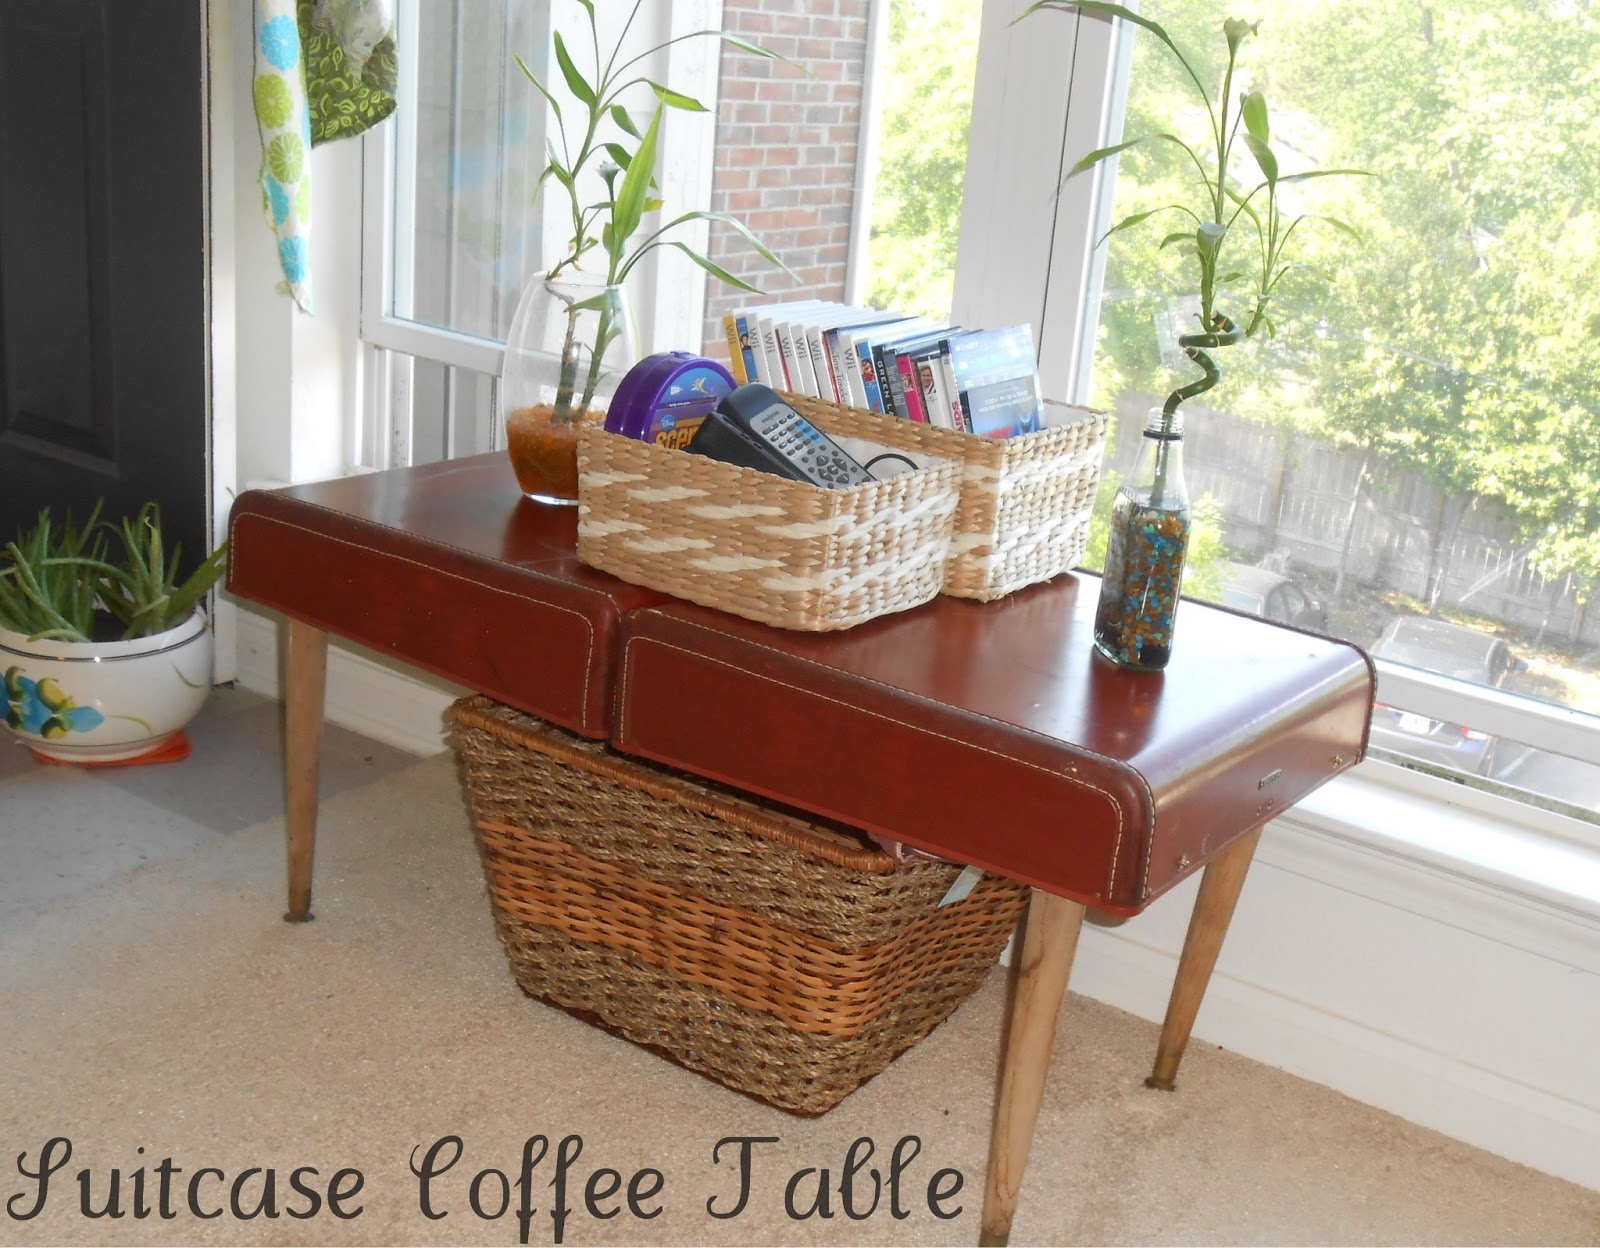 Beyond the Cookie Cutter Suitcase Coffee Table